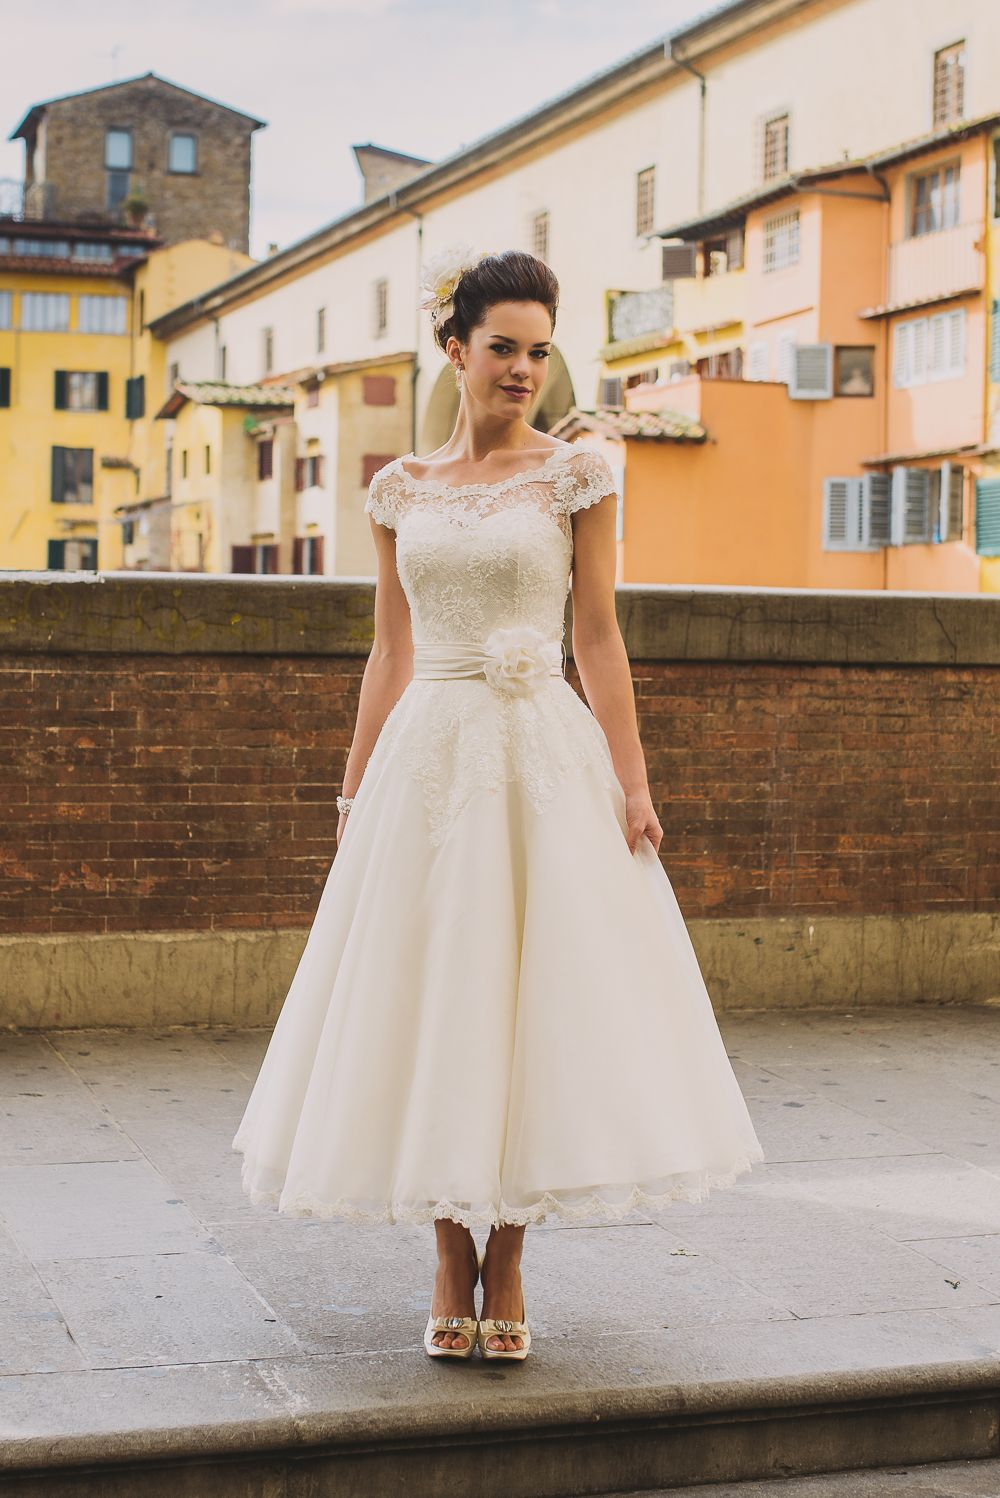 Francesca forget me not designs wedding dresses by forget me not